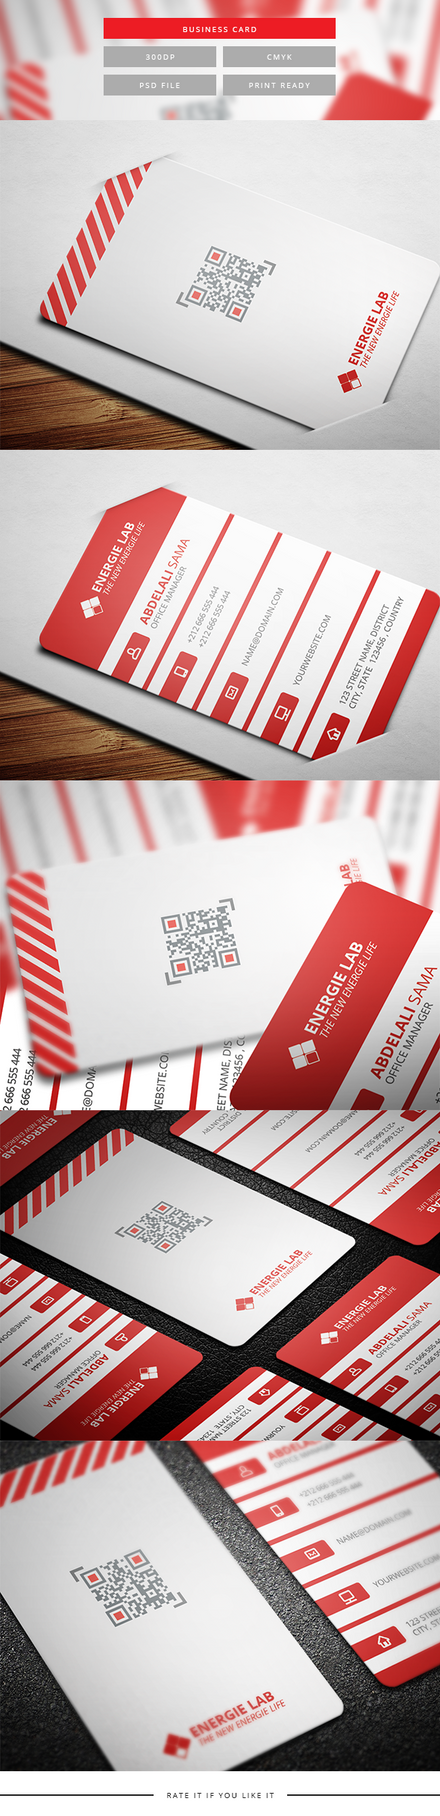 Corporate Business card by karimmove